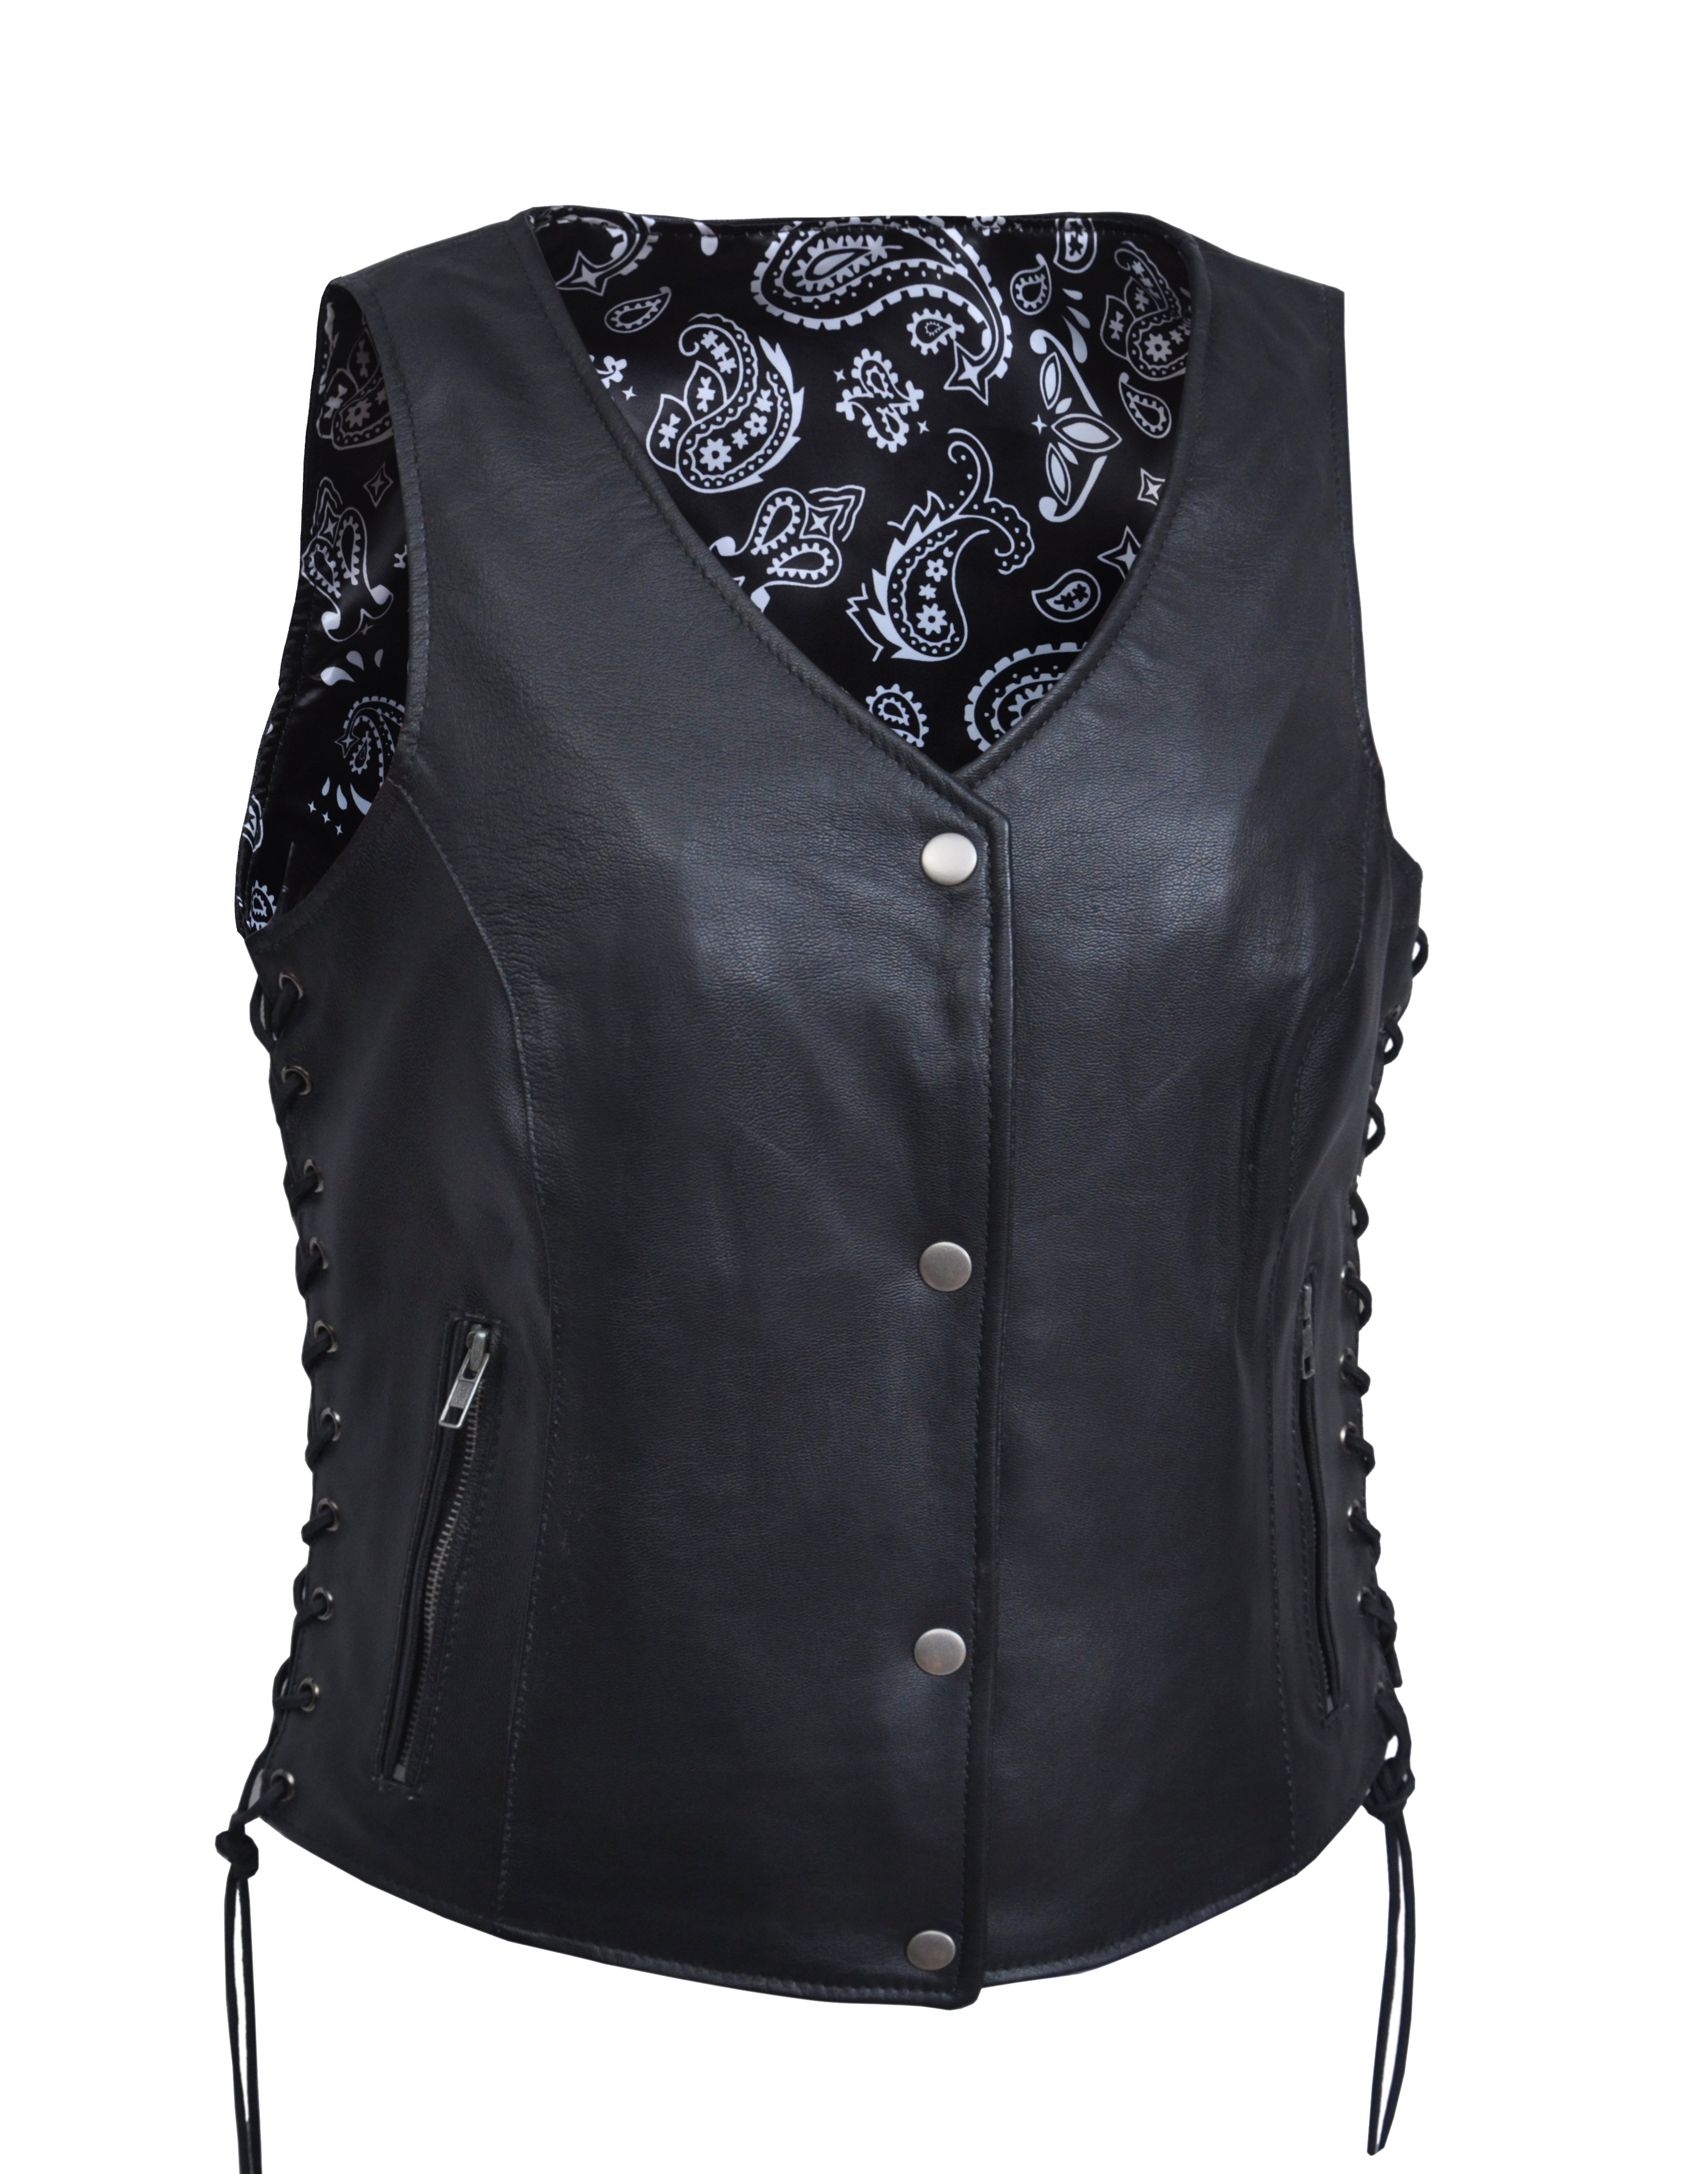 Women's Leather Vest with Black Paisley Lining - Ladies Vests - SKU 6890-00-UN